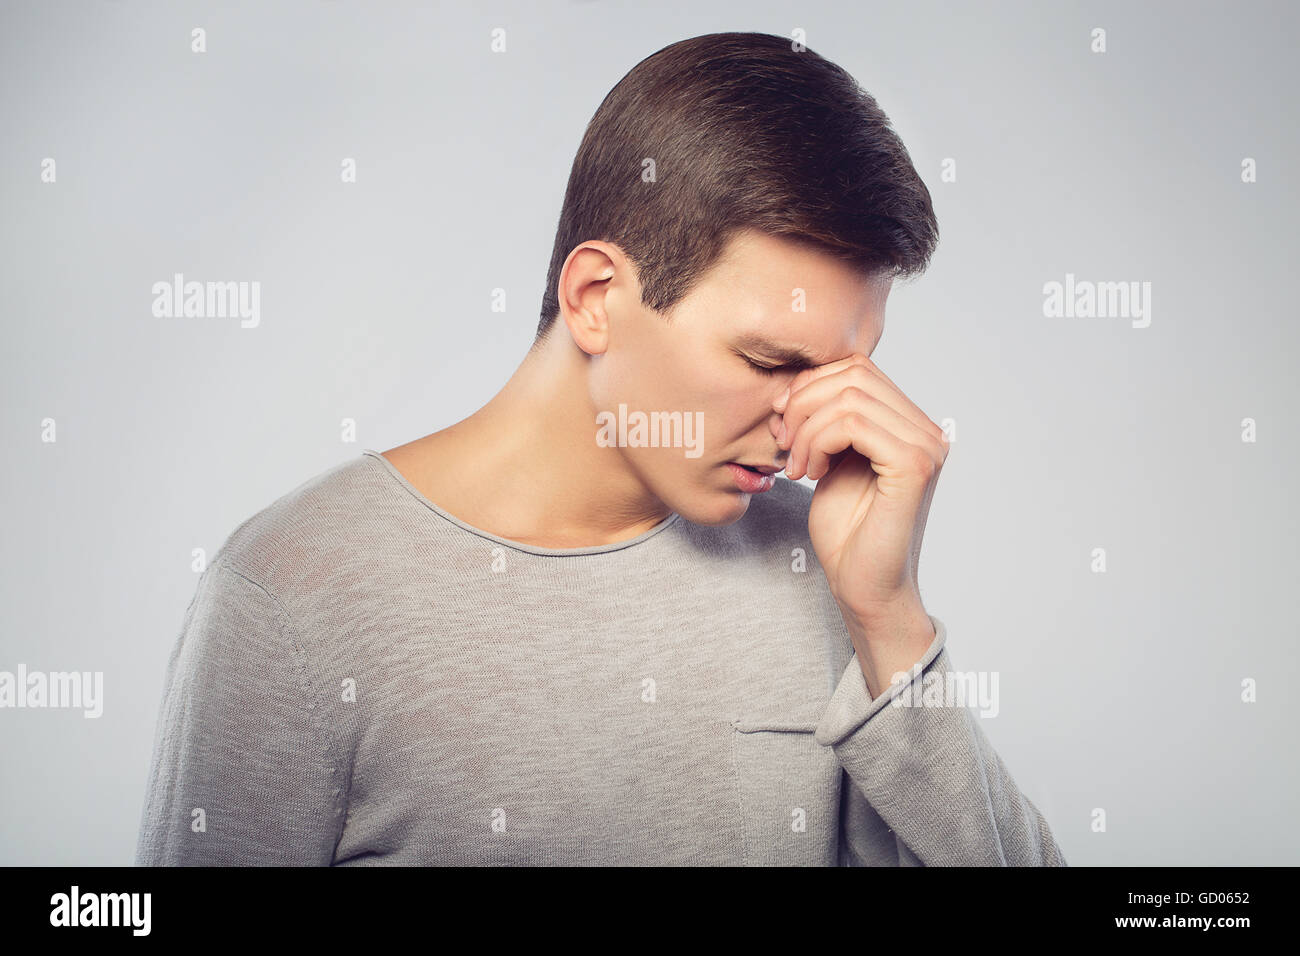 Image result for young man tired